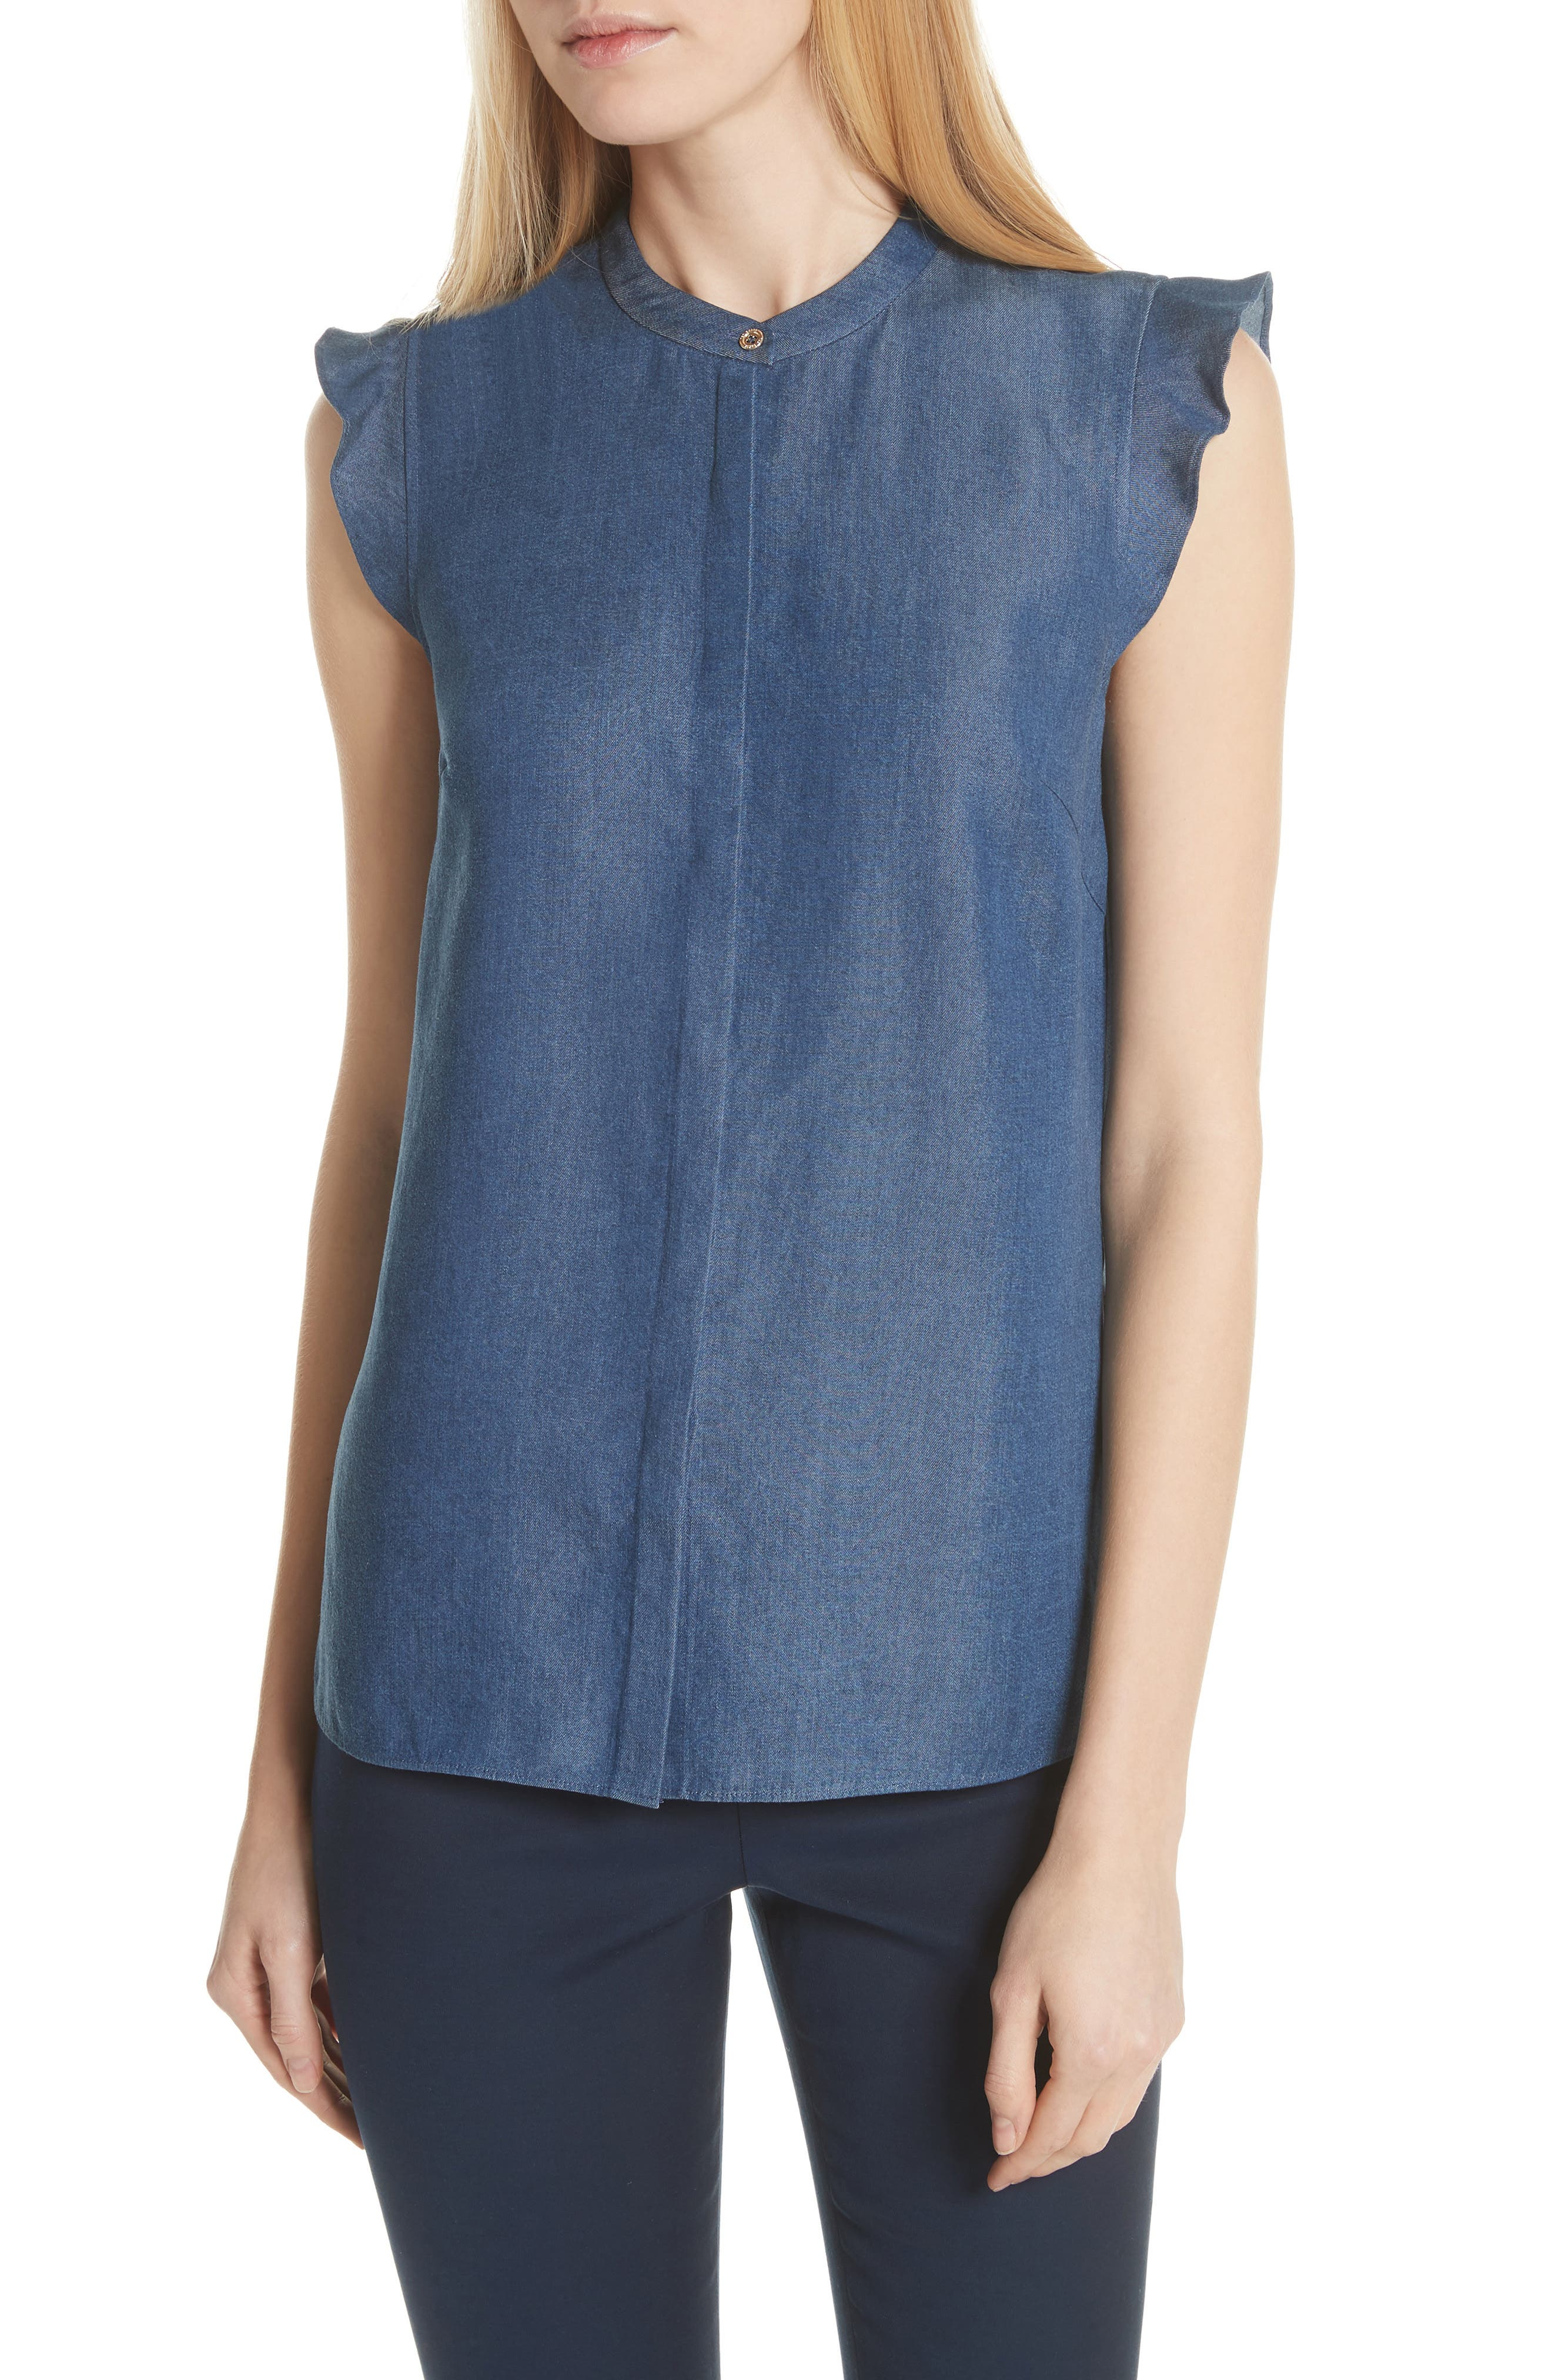 Colour by Numbers Denim Top,                             Main thumbnail 1, color,                             Mid-Wash